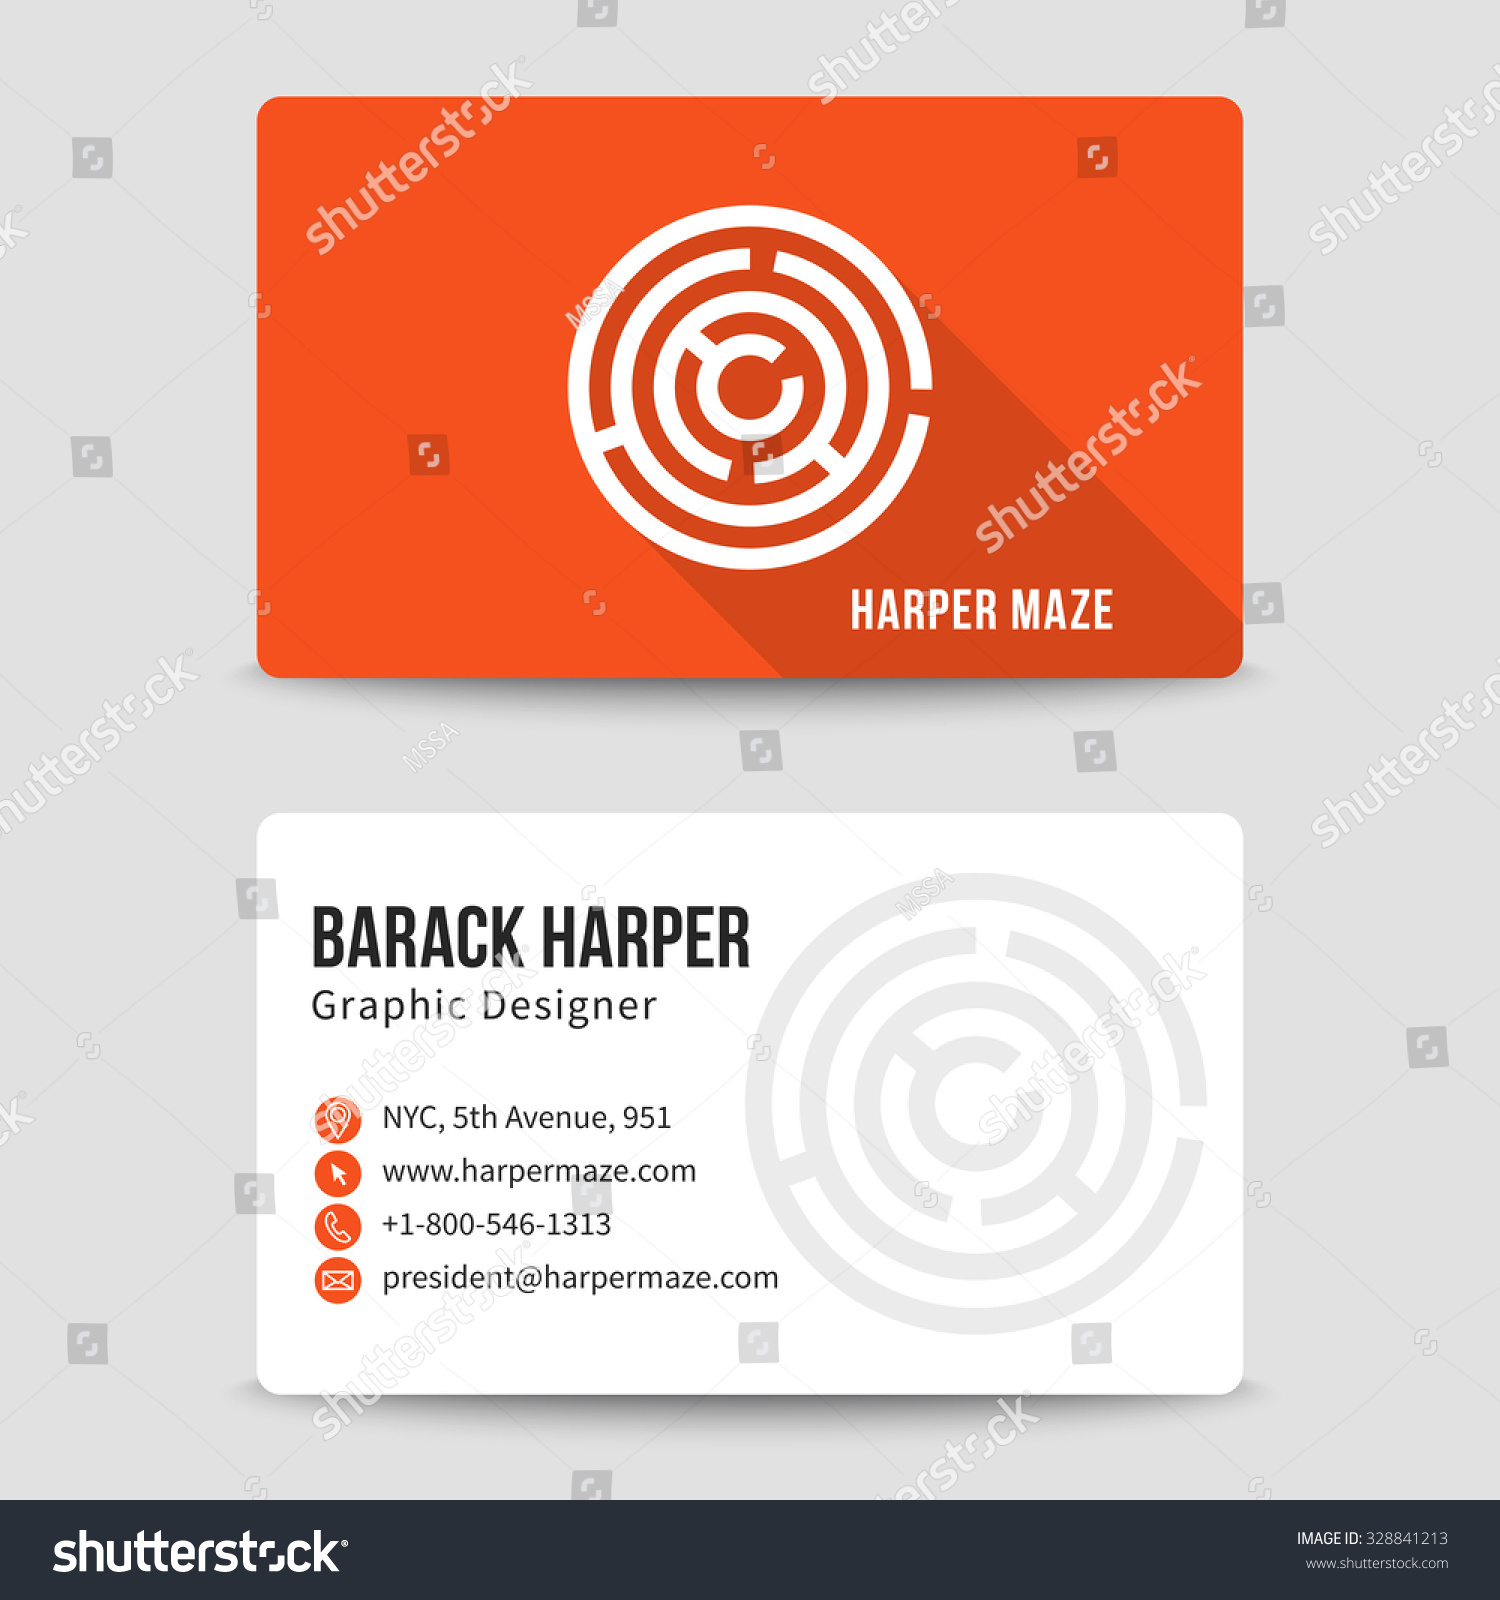 Modern business card vector template maze stock vector royalty free modern business card vector template with maze logo address and phone number website and cheaphphosting Gallery